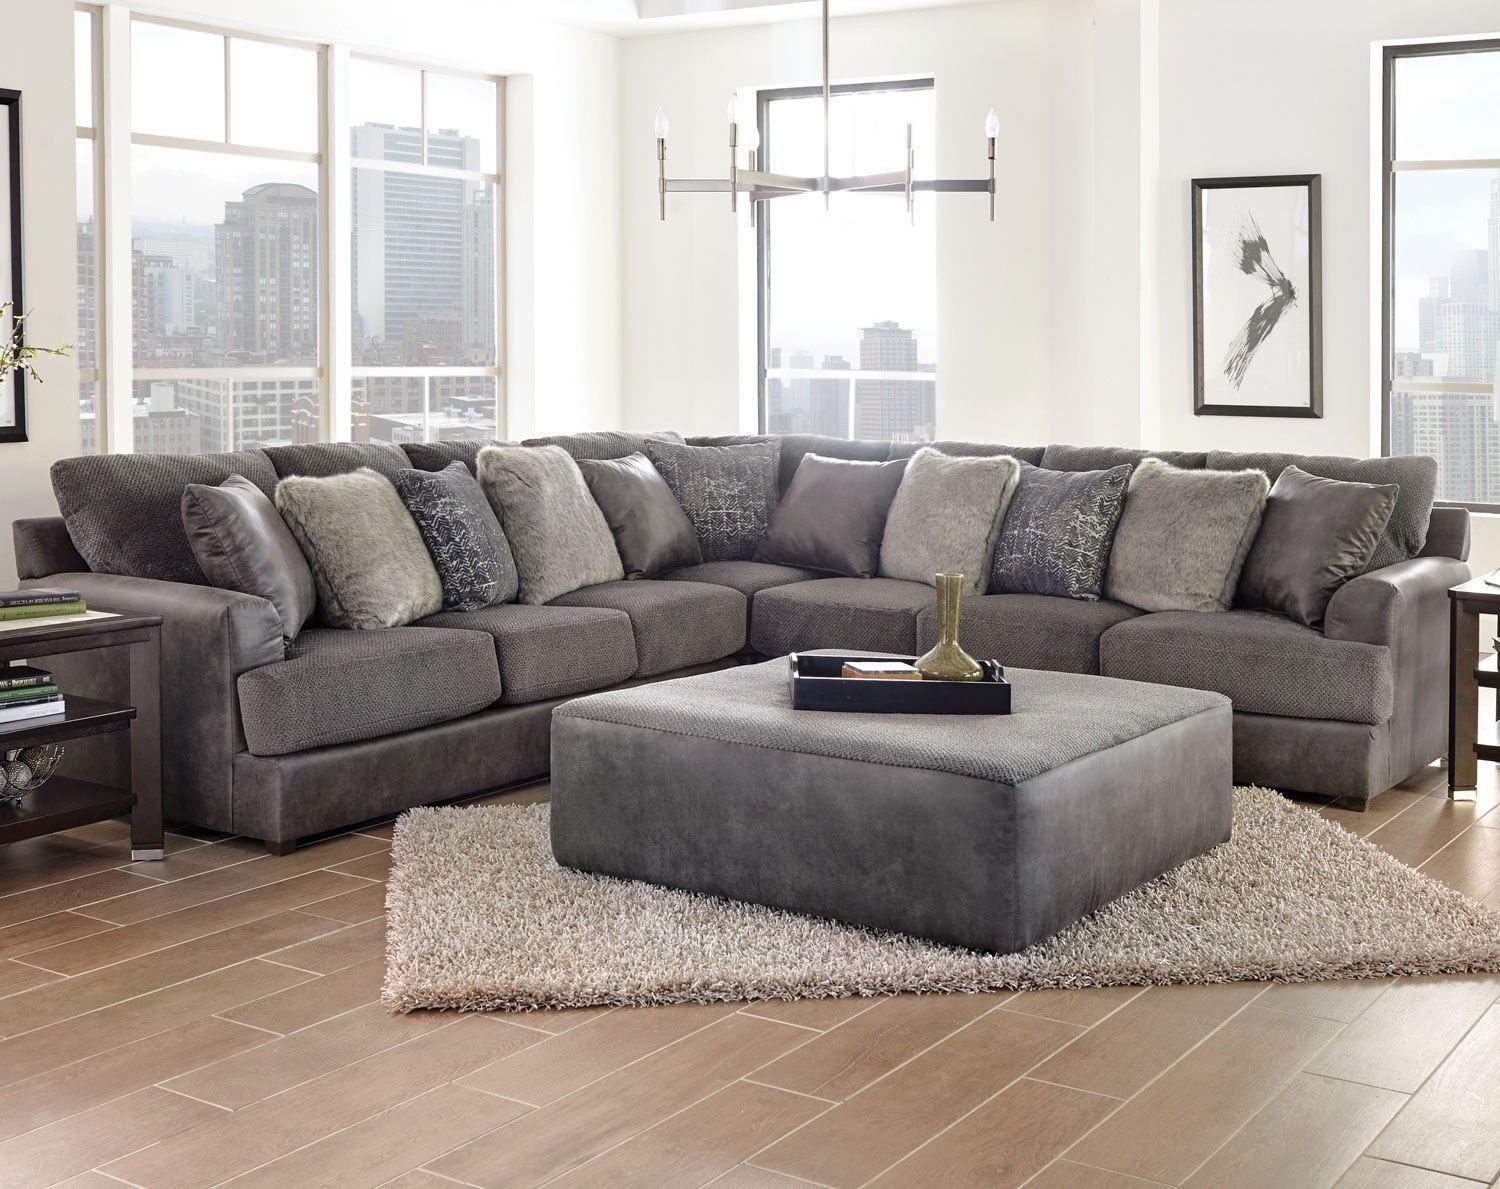 Cortland Sectional Set Graphite Sectional Living Room Small